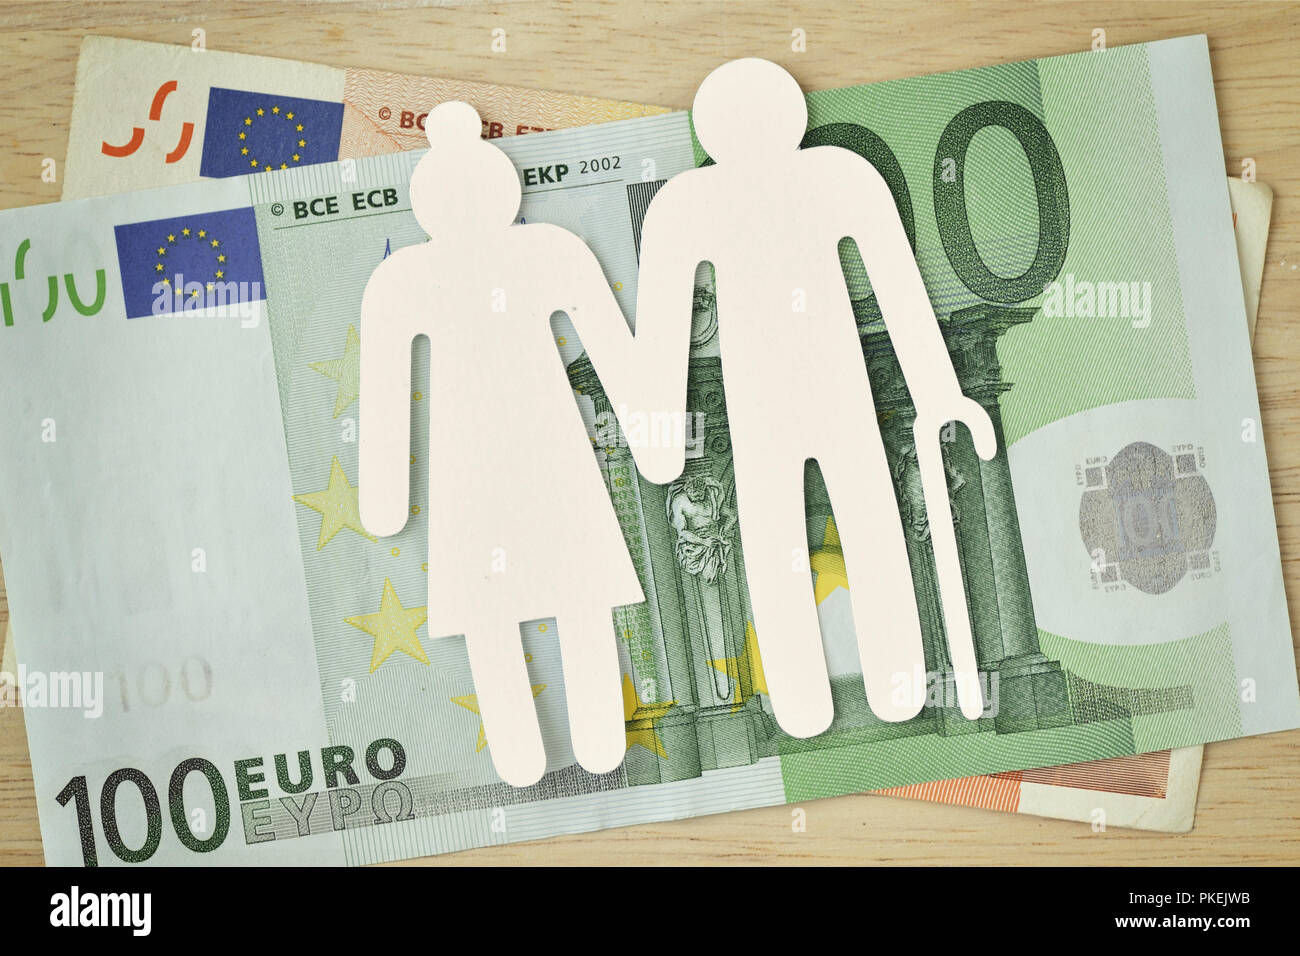 Paper elderly couple cut-out on euro banknotes - Pension concept - Stock Image